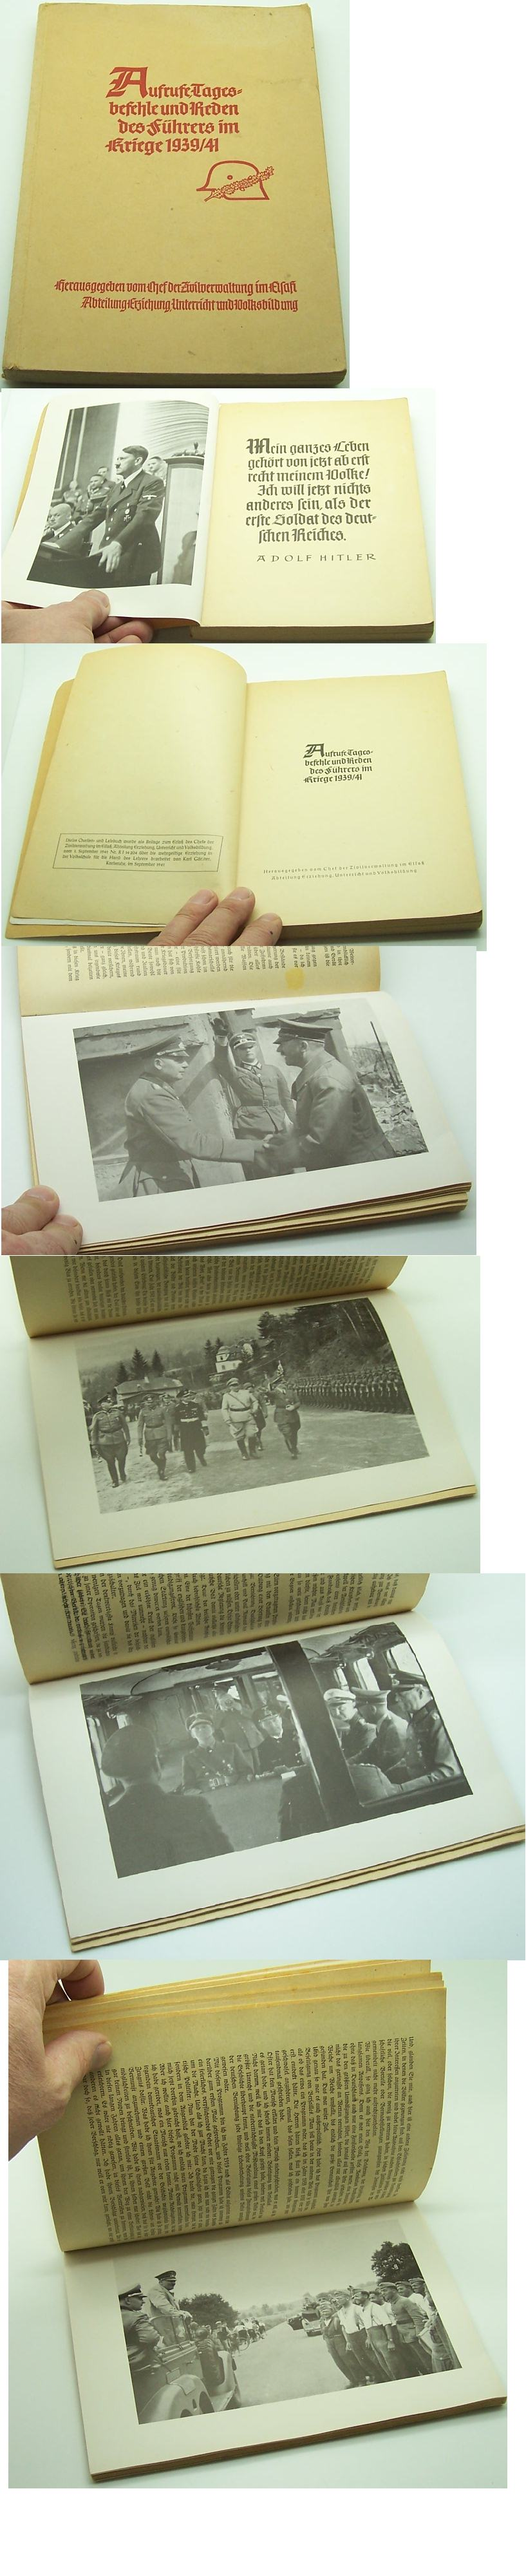 Views, orders and speeches of the Hitler in the war 1939/41